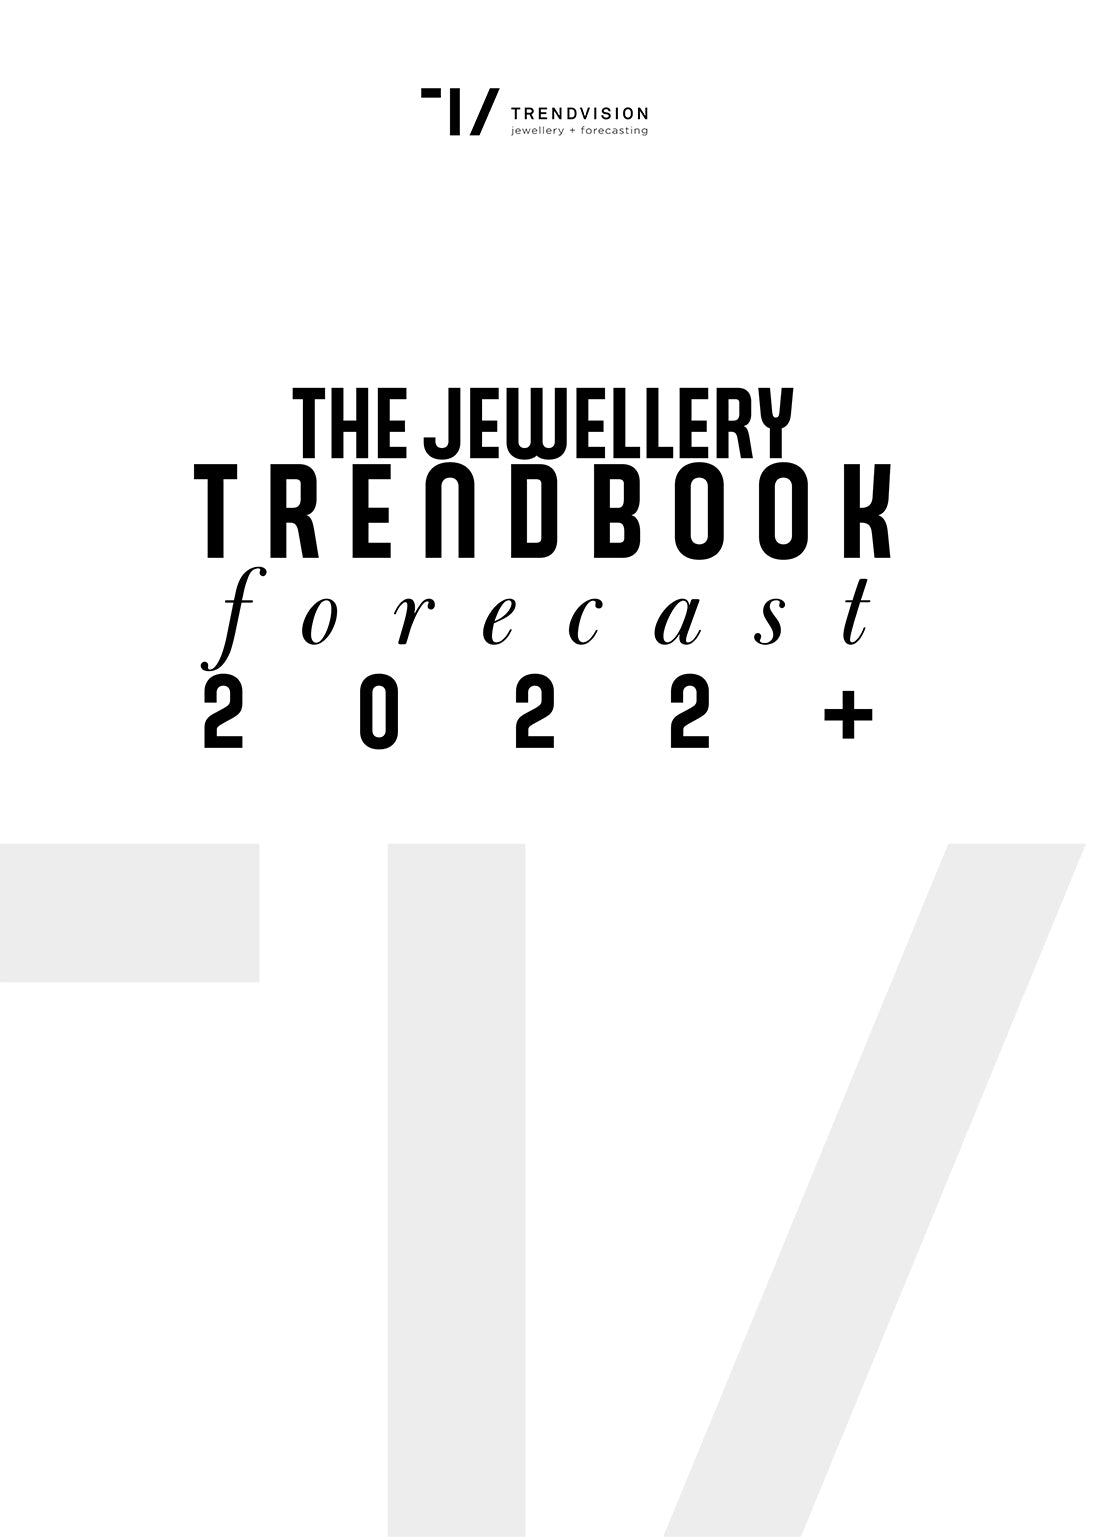 The jewellery trendbook forecast 2022+